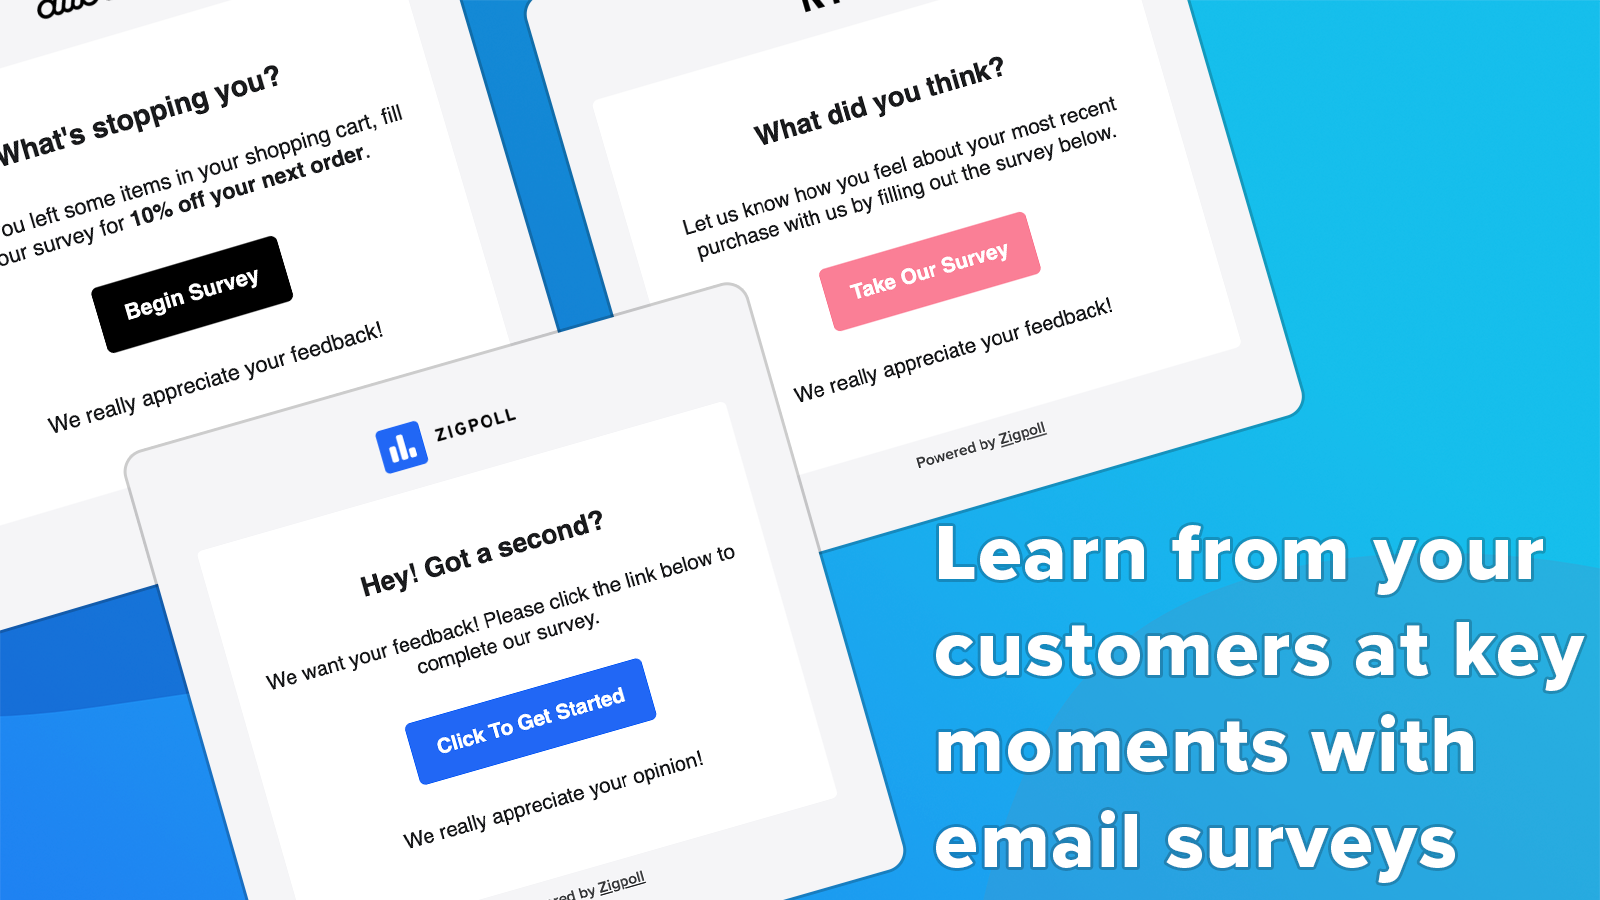 Learn from your customers at key moments with email surveys